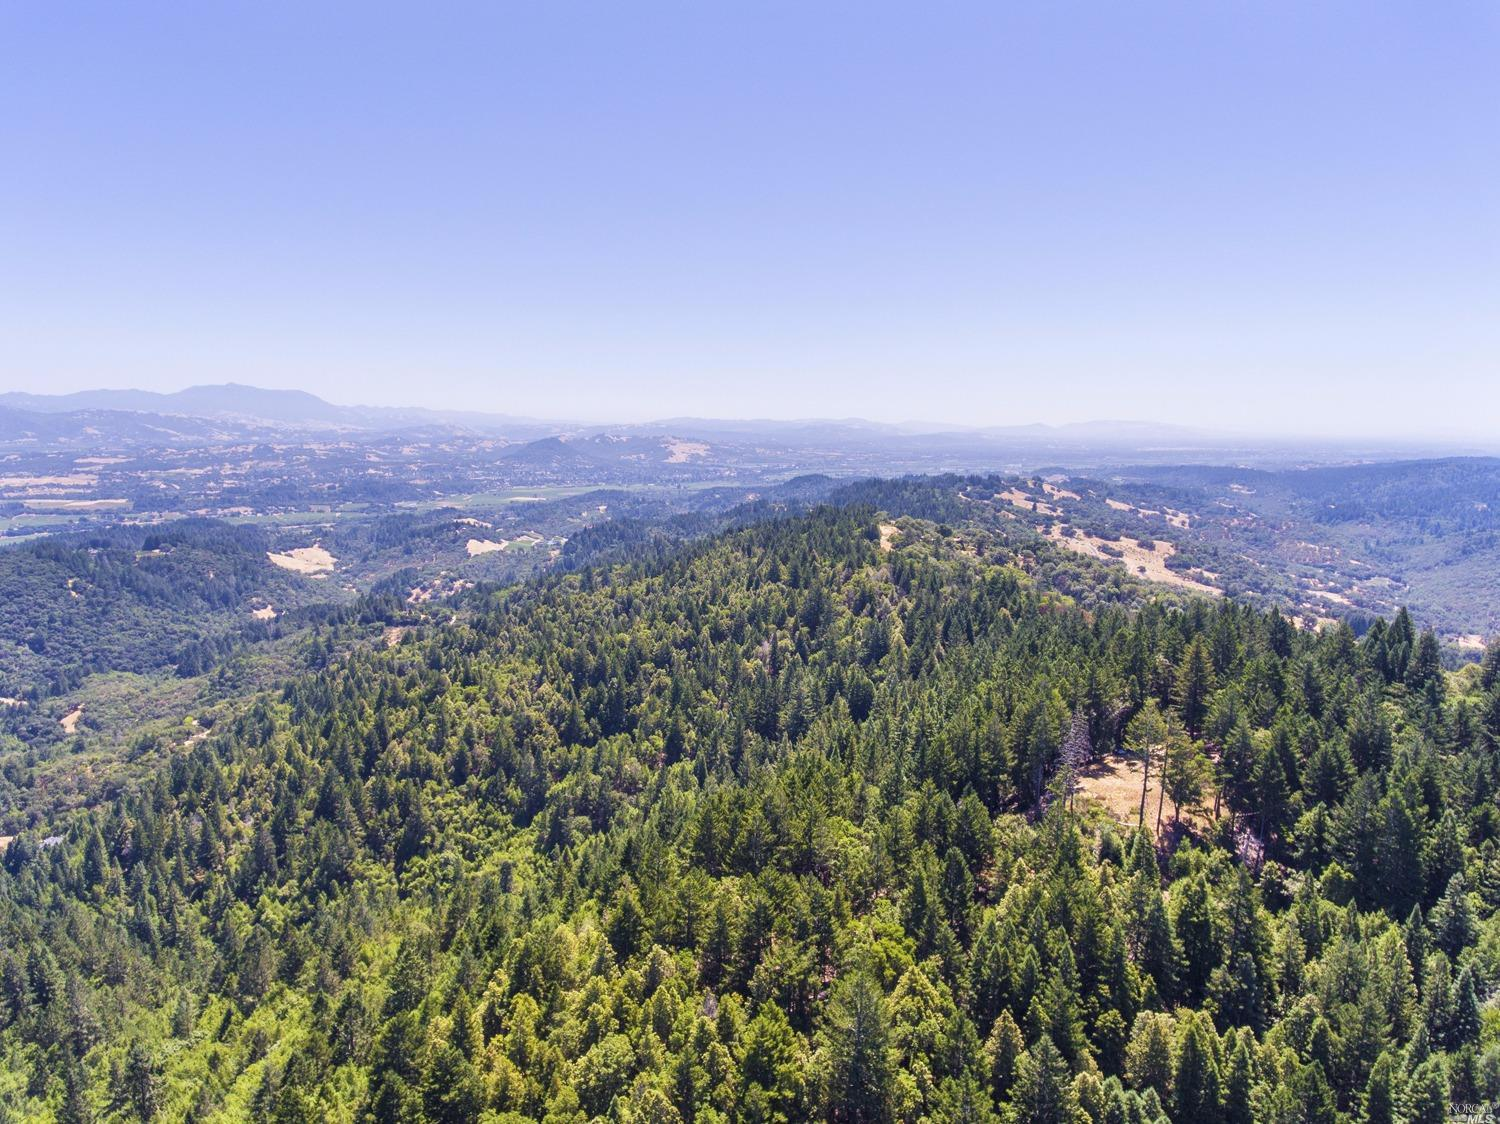 1600 Big Ridge road Healdsburg, CA 95448 - MLS #: 21627318